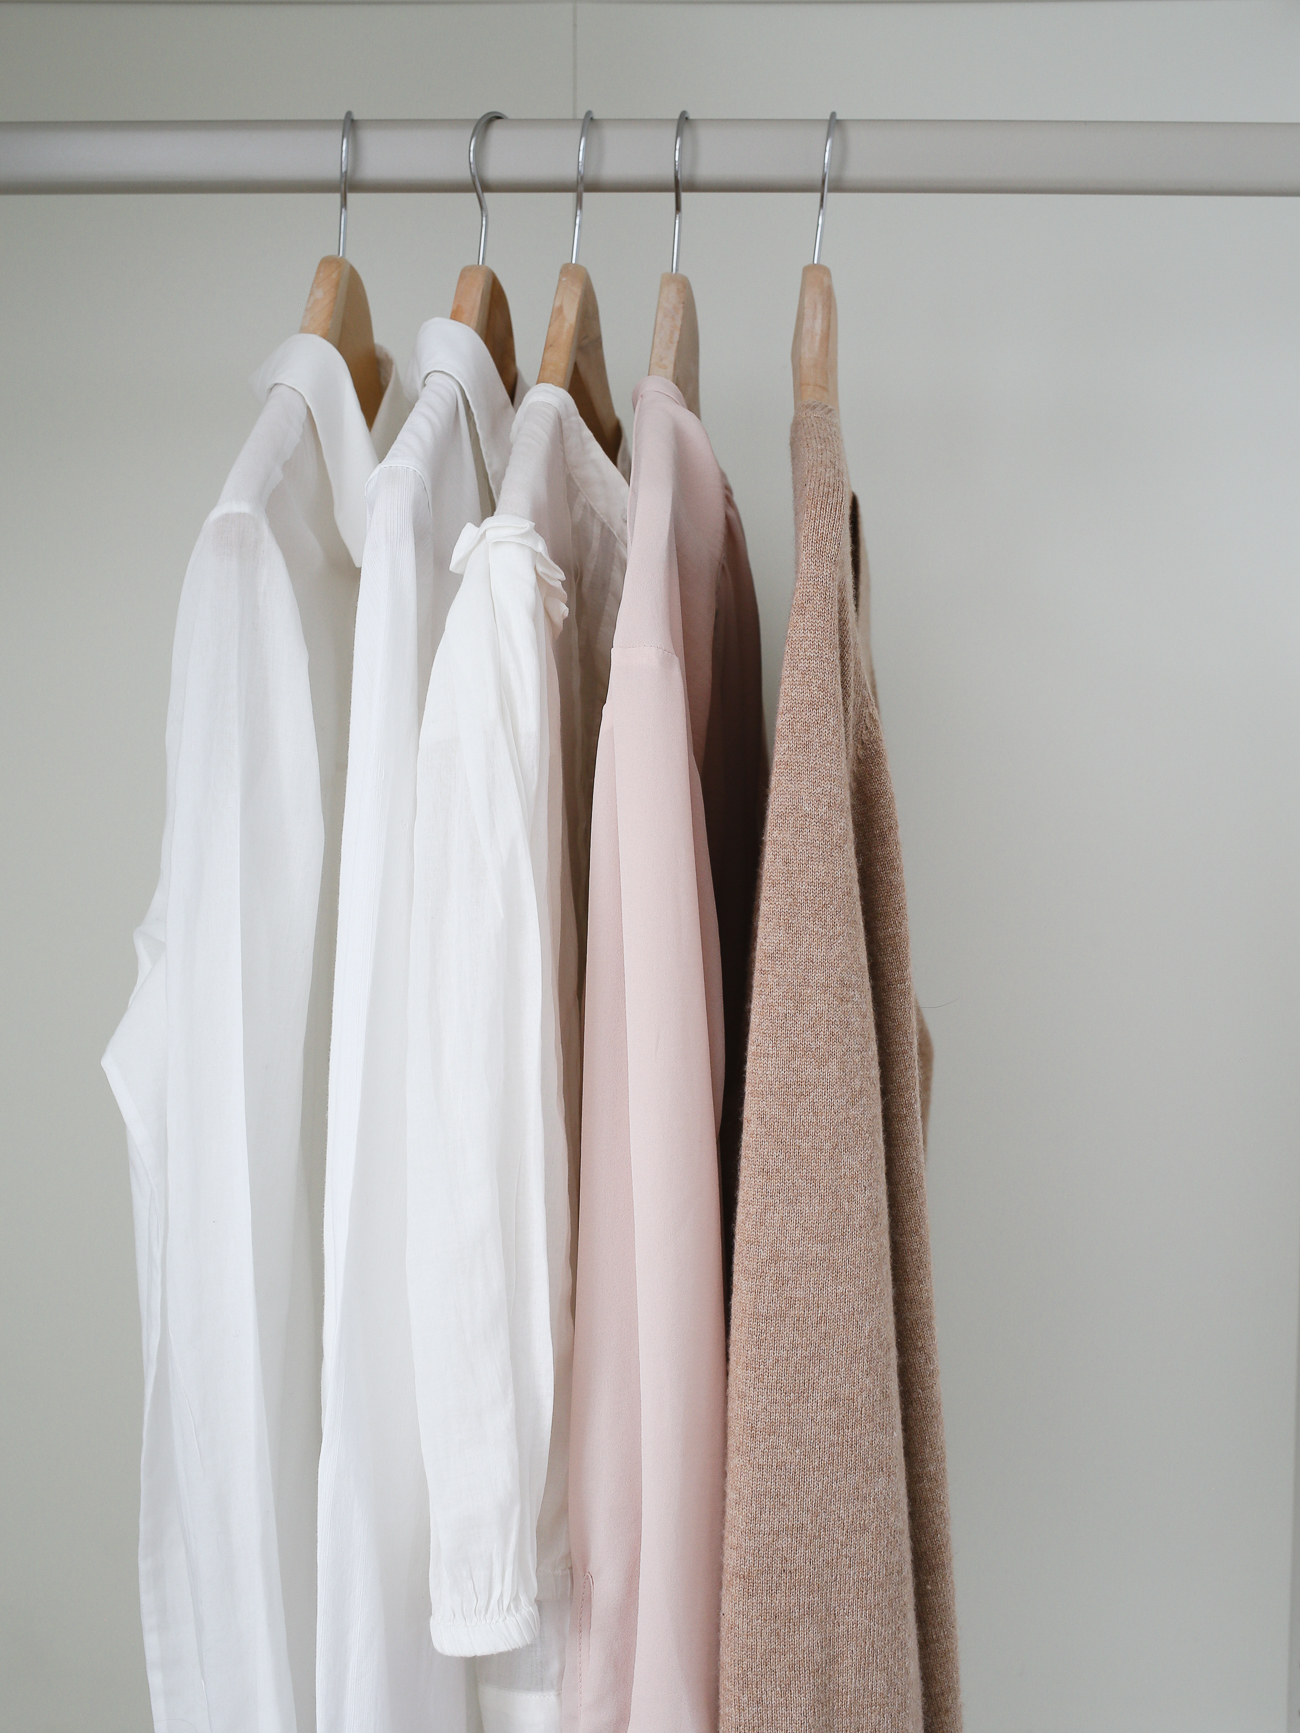 Clothes in wardrobe | Design Hunter